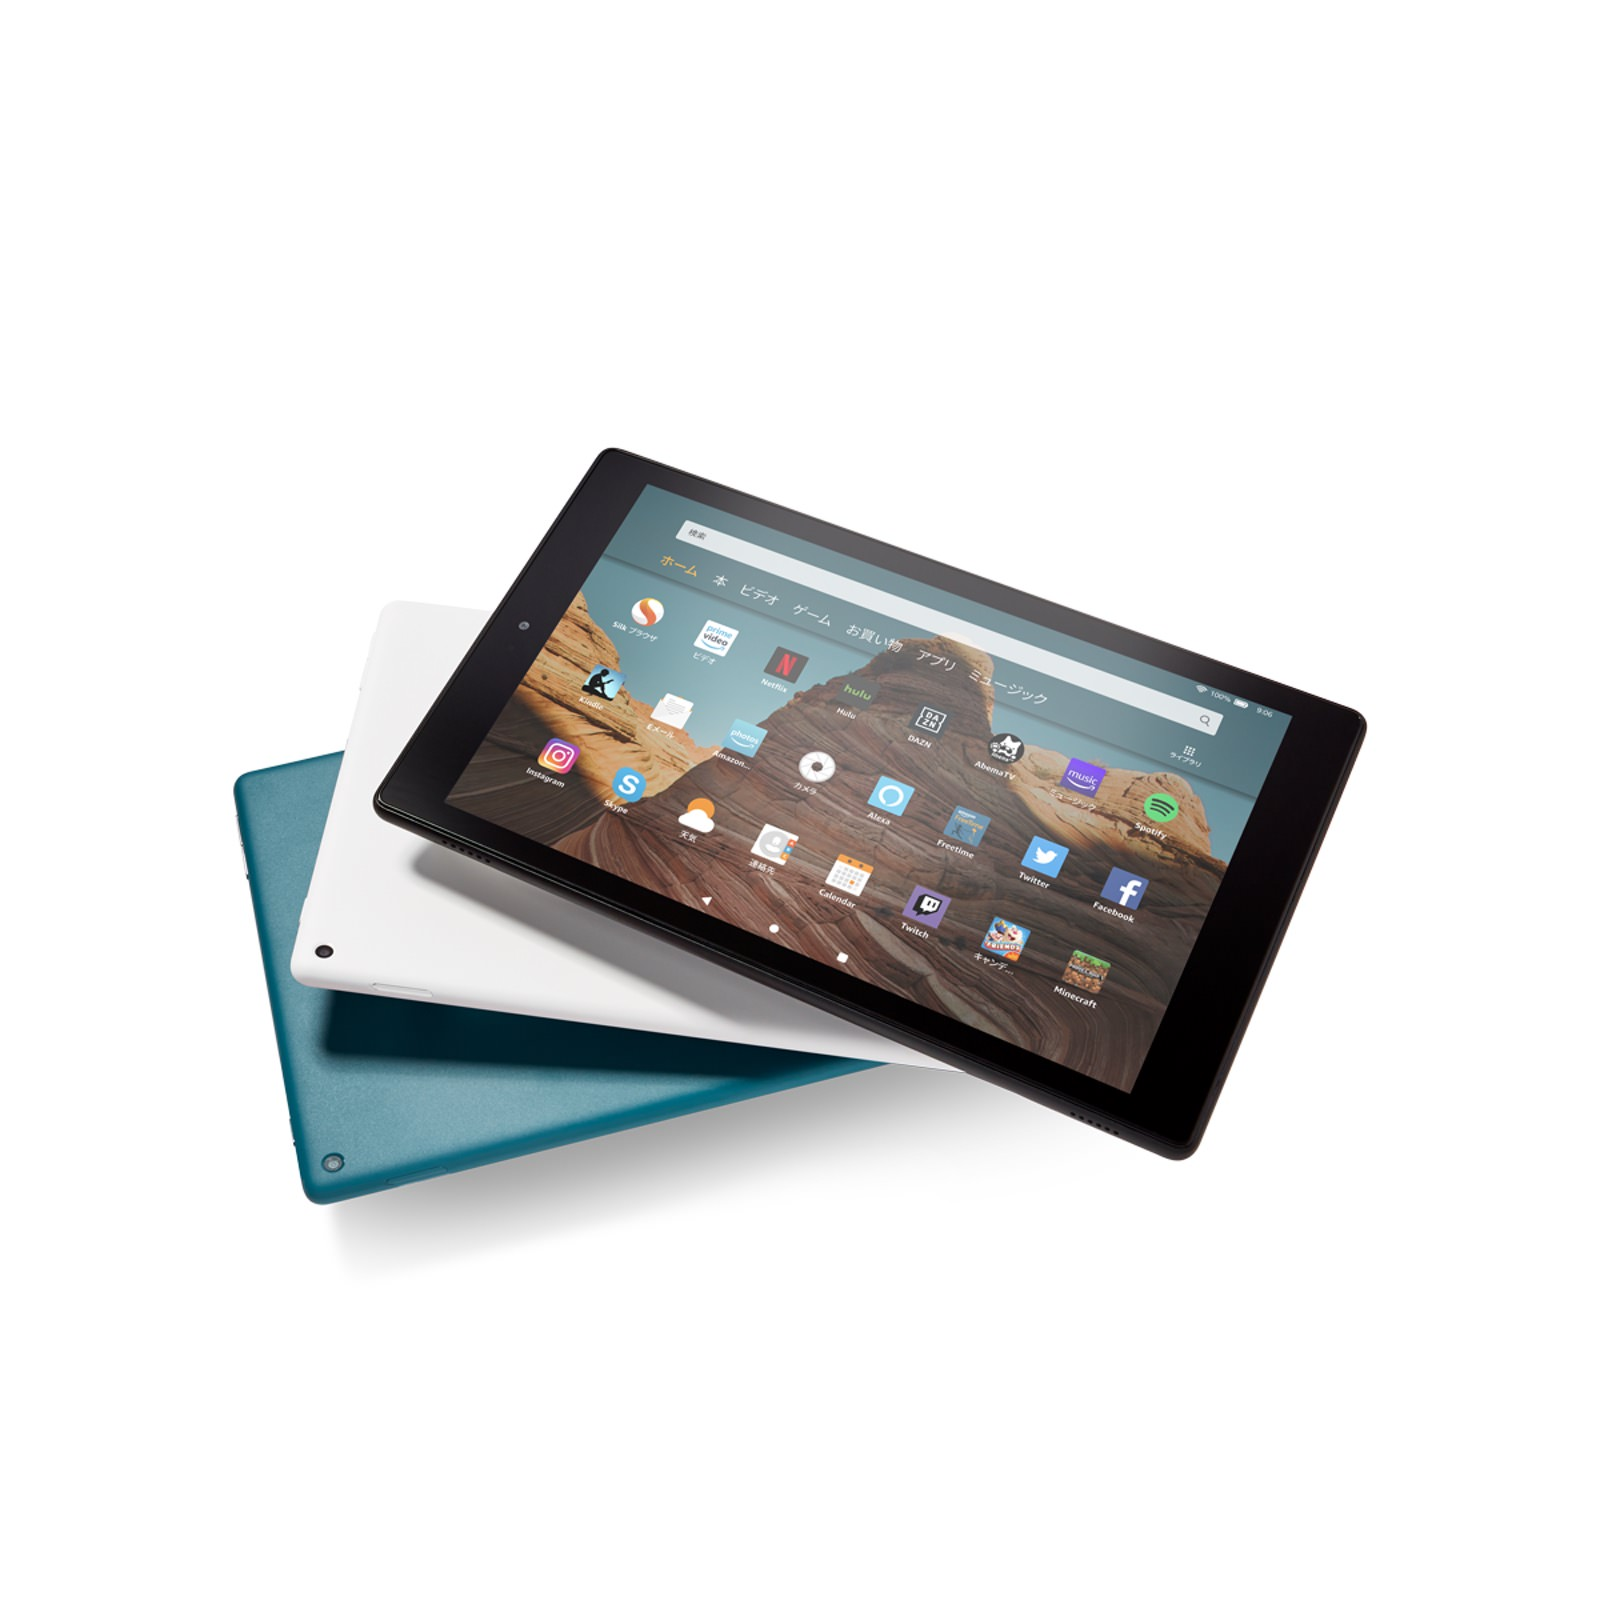 Fire-HD-10-Tablet-New-Model-10.jpg